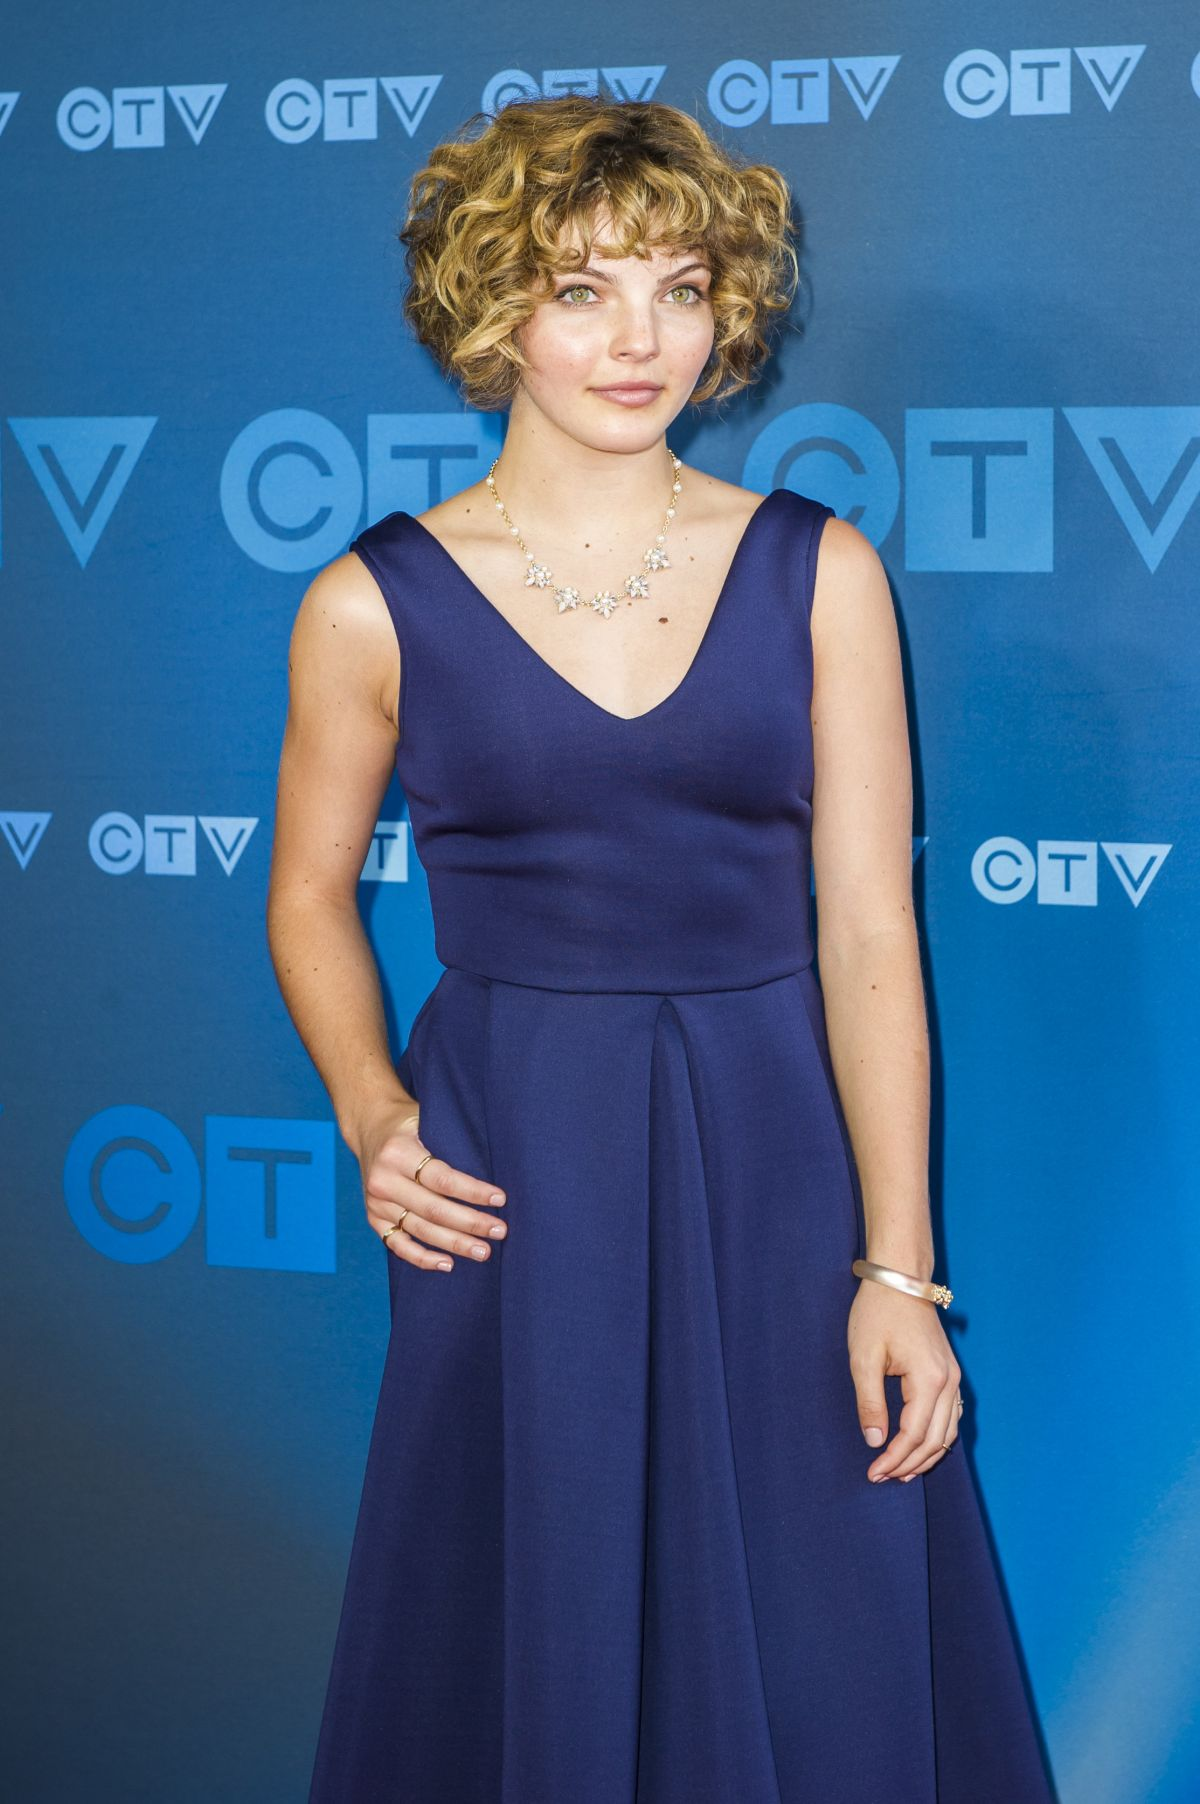 CAMREN BICONDOVA at CTV Upfront in Toronto